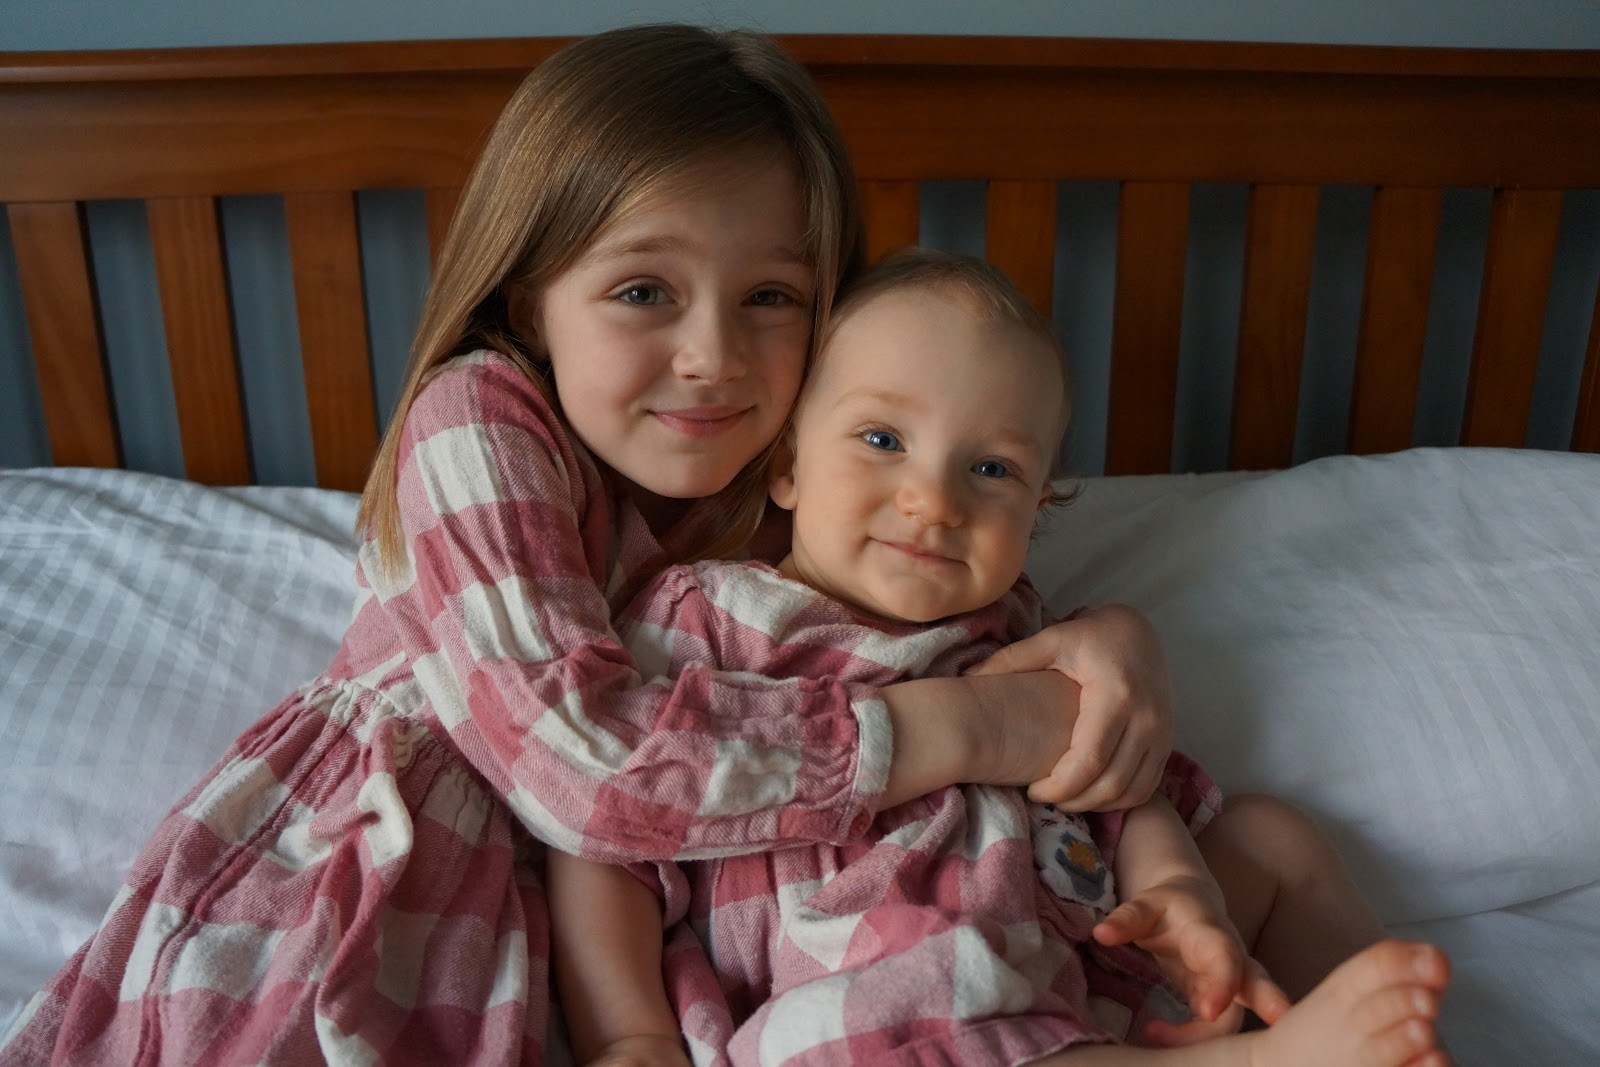 baby and sister in matching dresses cuddling